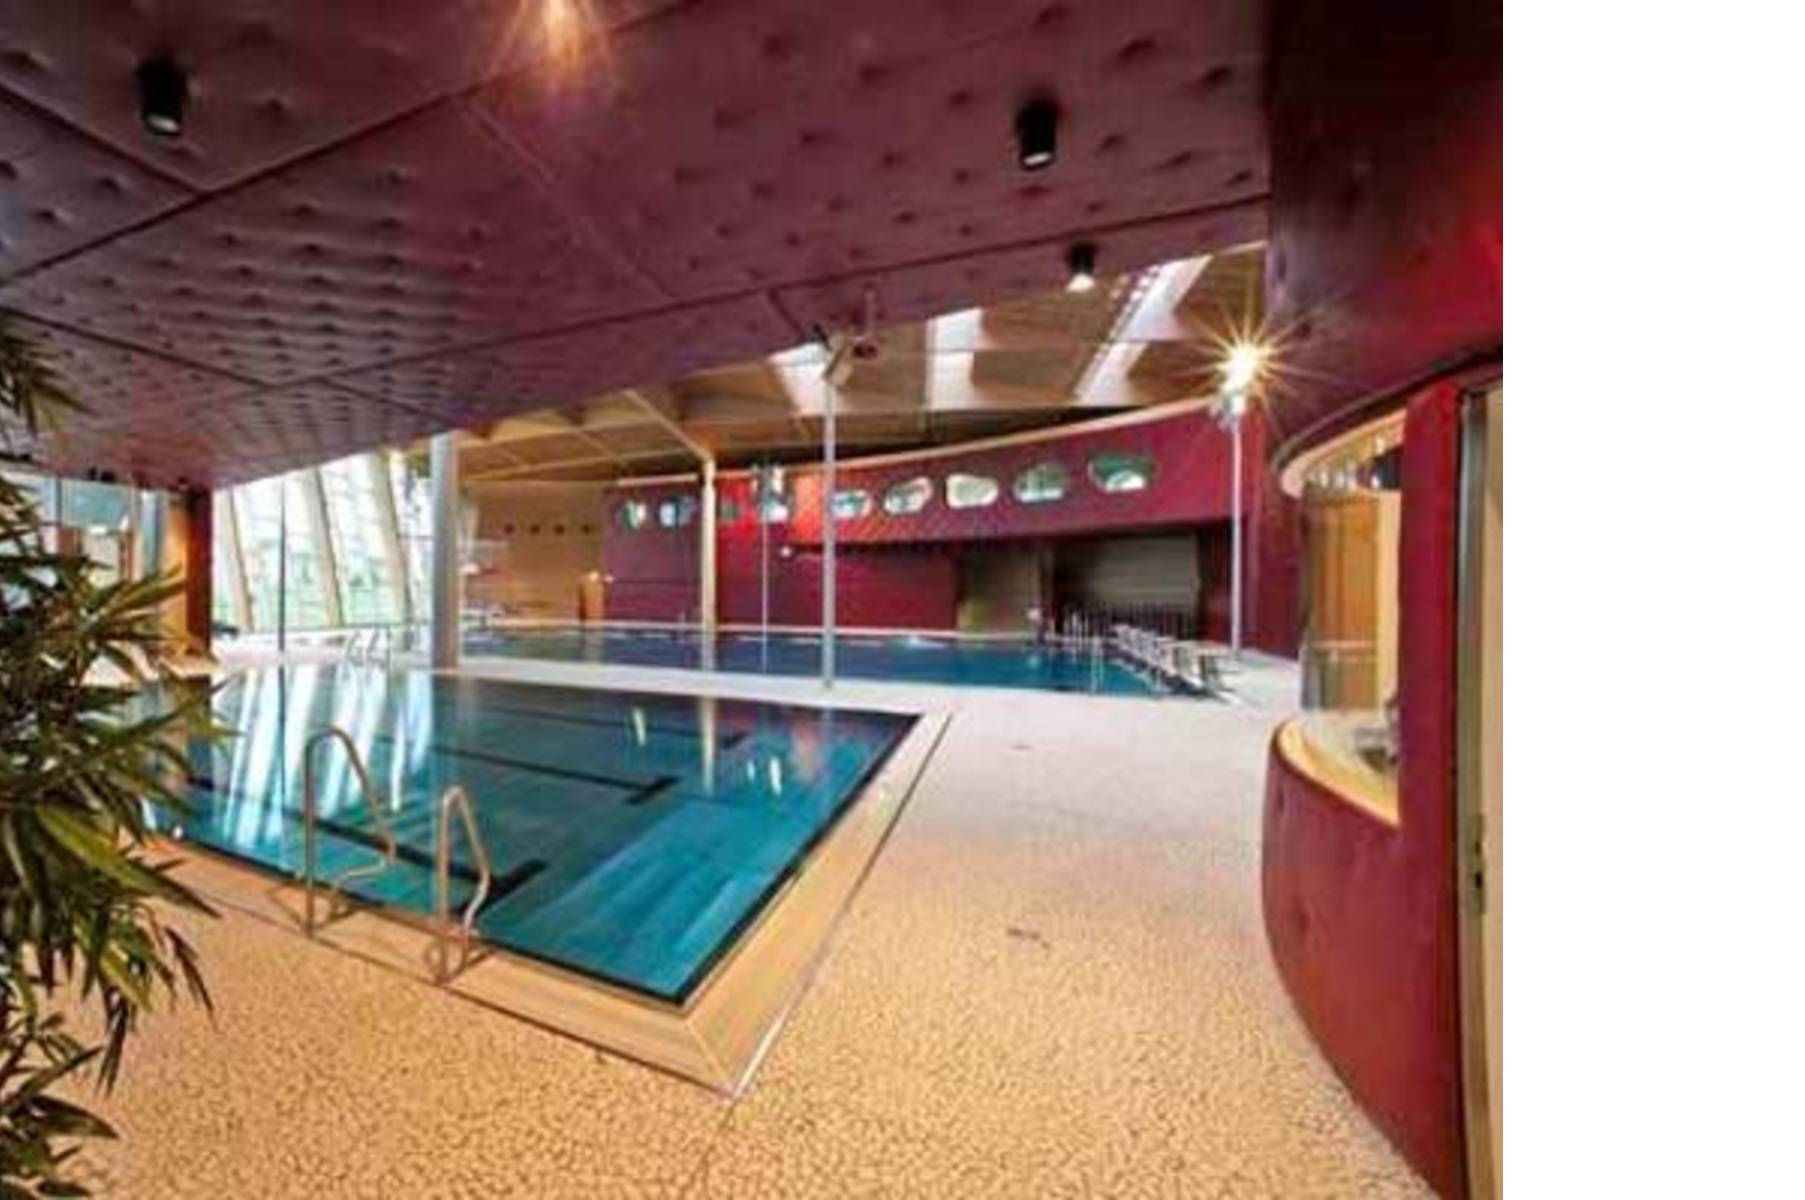 Les Thermes In Strassen Luxembourg | Floornature serapportantà Piscine Strassen